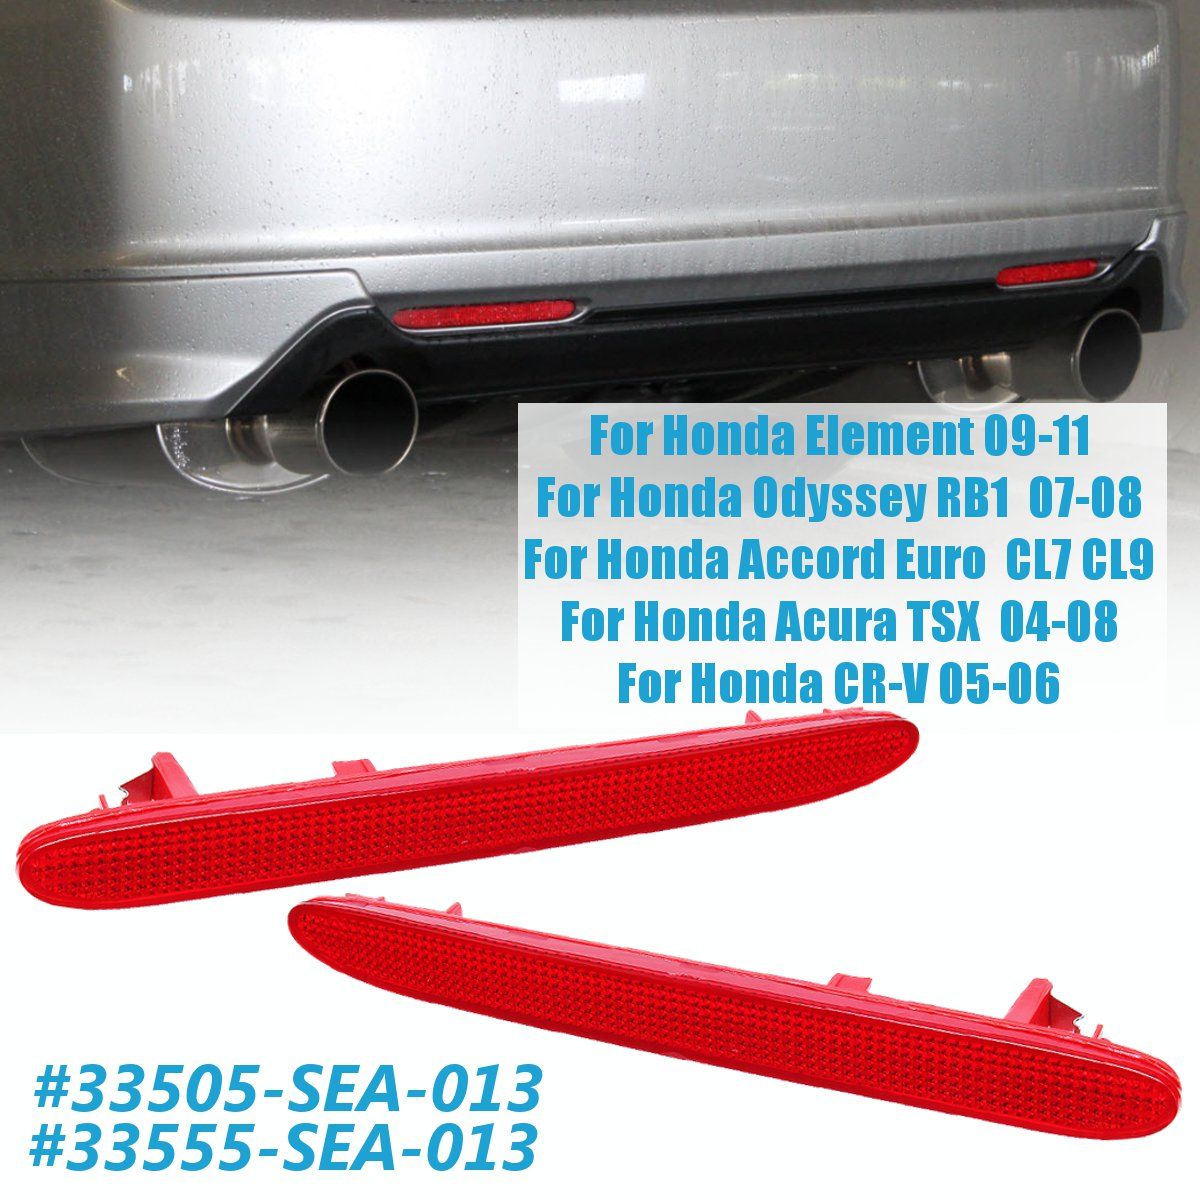 Left/Right Rear <font><b>Bumper</b></font> Reflector For Honda <font><b>Acura</b></font> <font><b>TSX</b></font> for Accord for Odyssey CR-V Element 33555-SEA-013, 33505-SEA-013 image